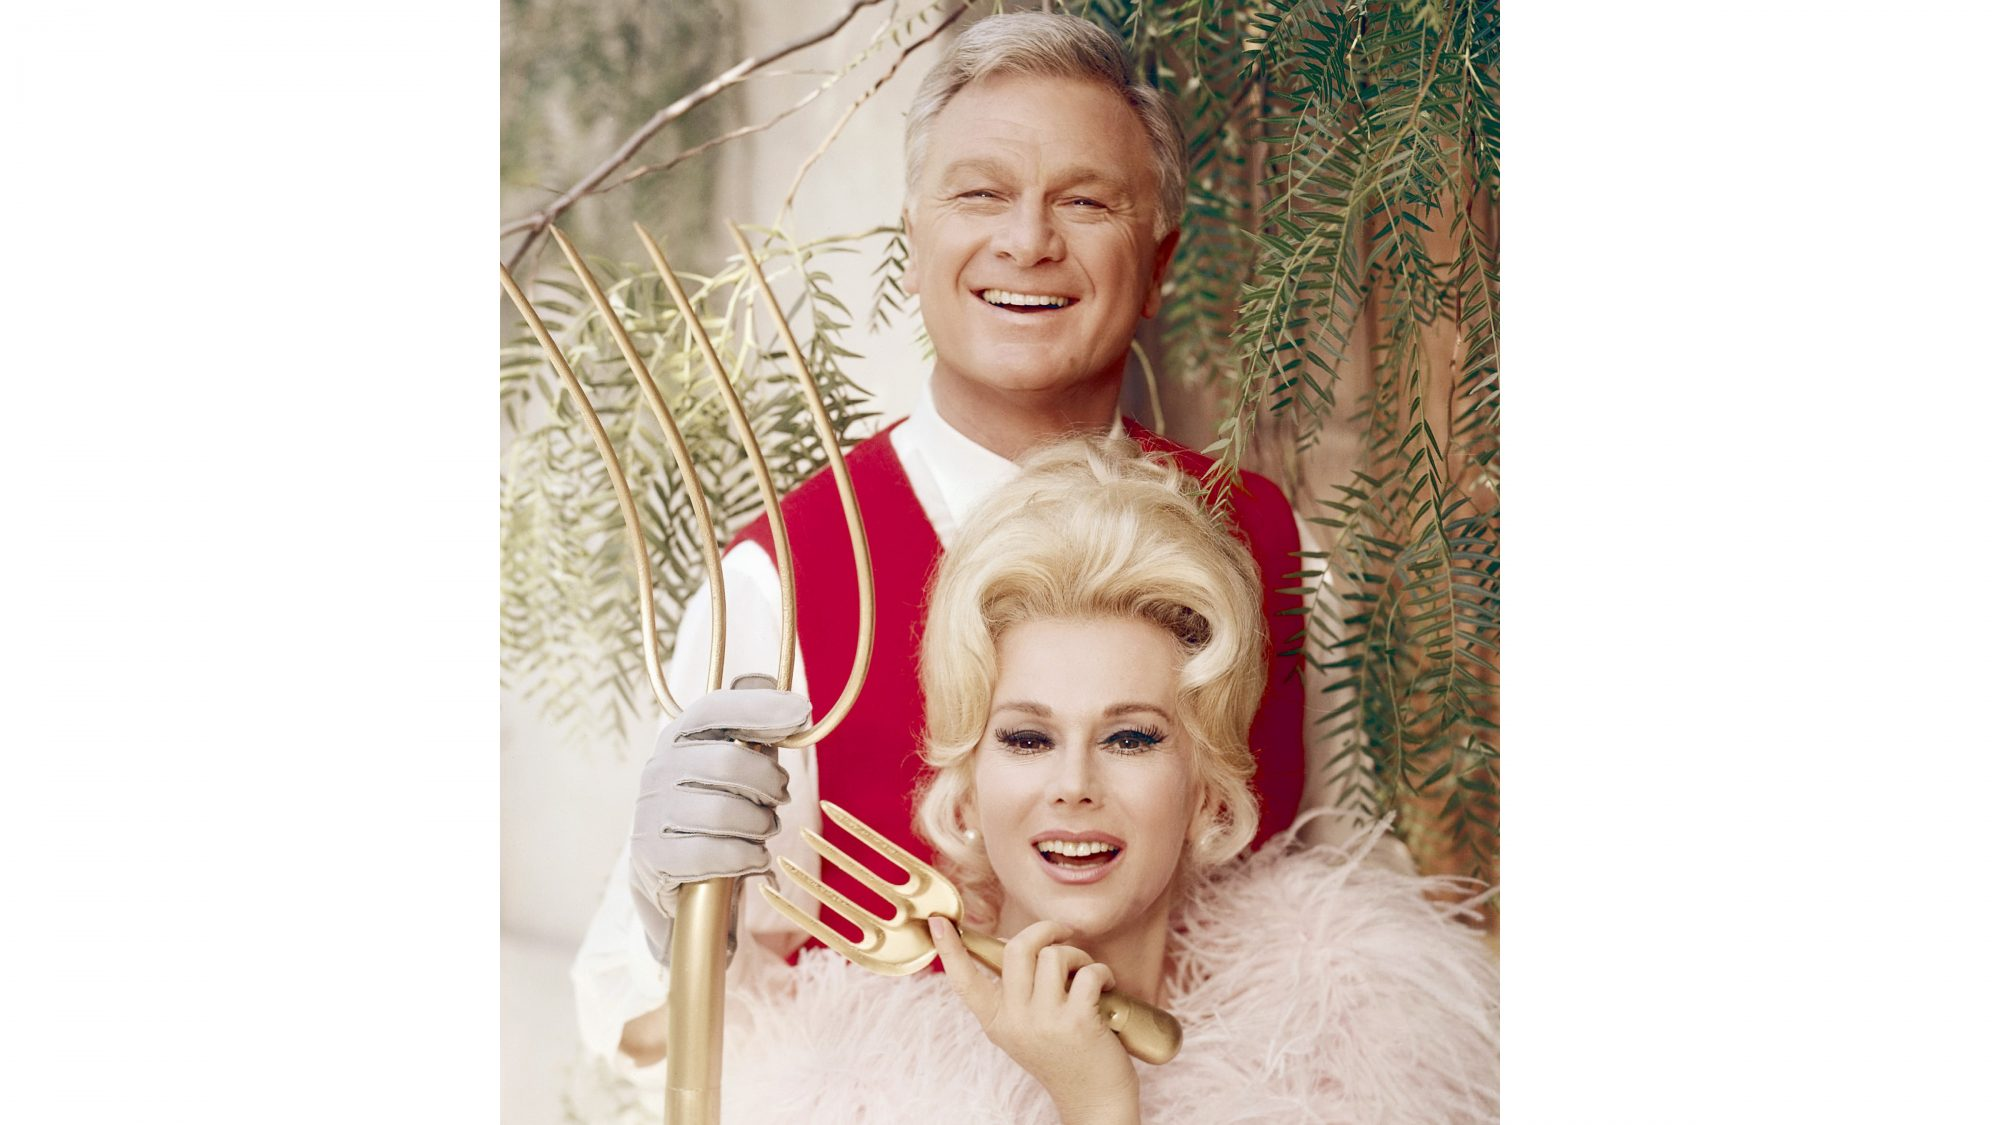 Green Acres Lisa and Oliver Douglas